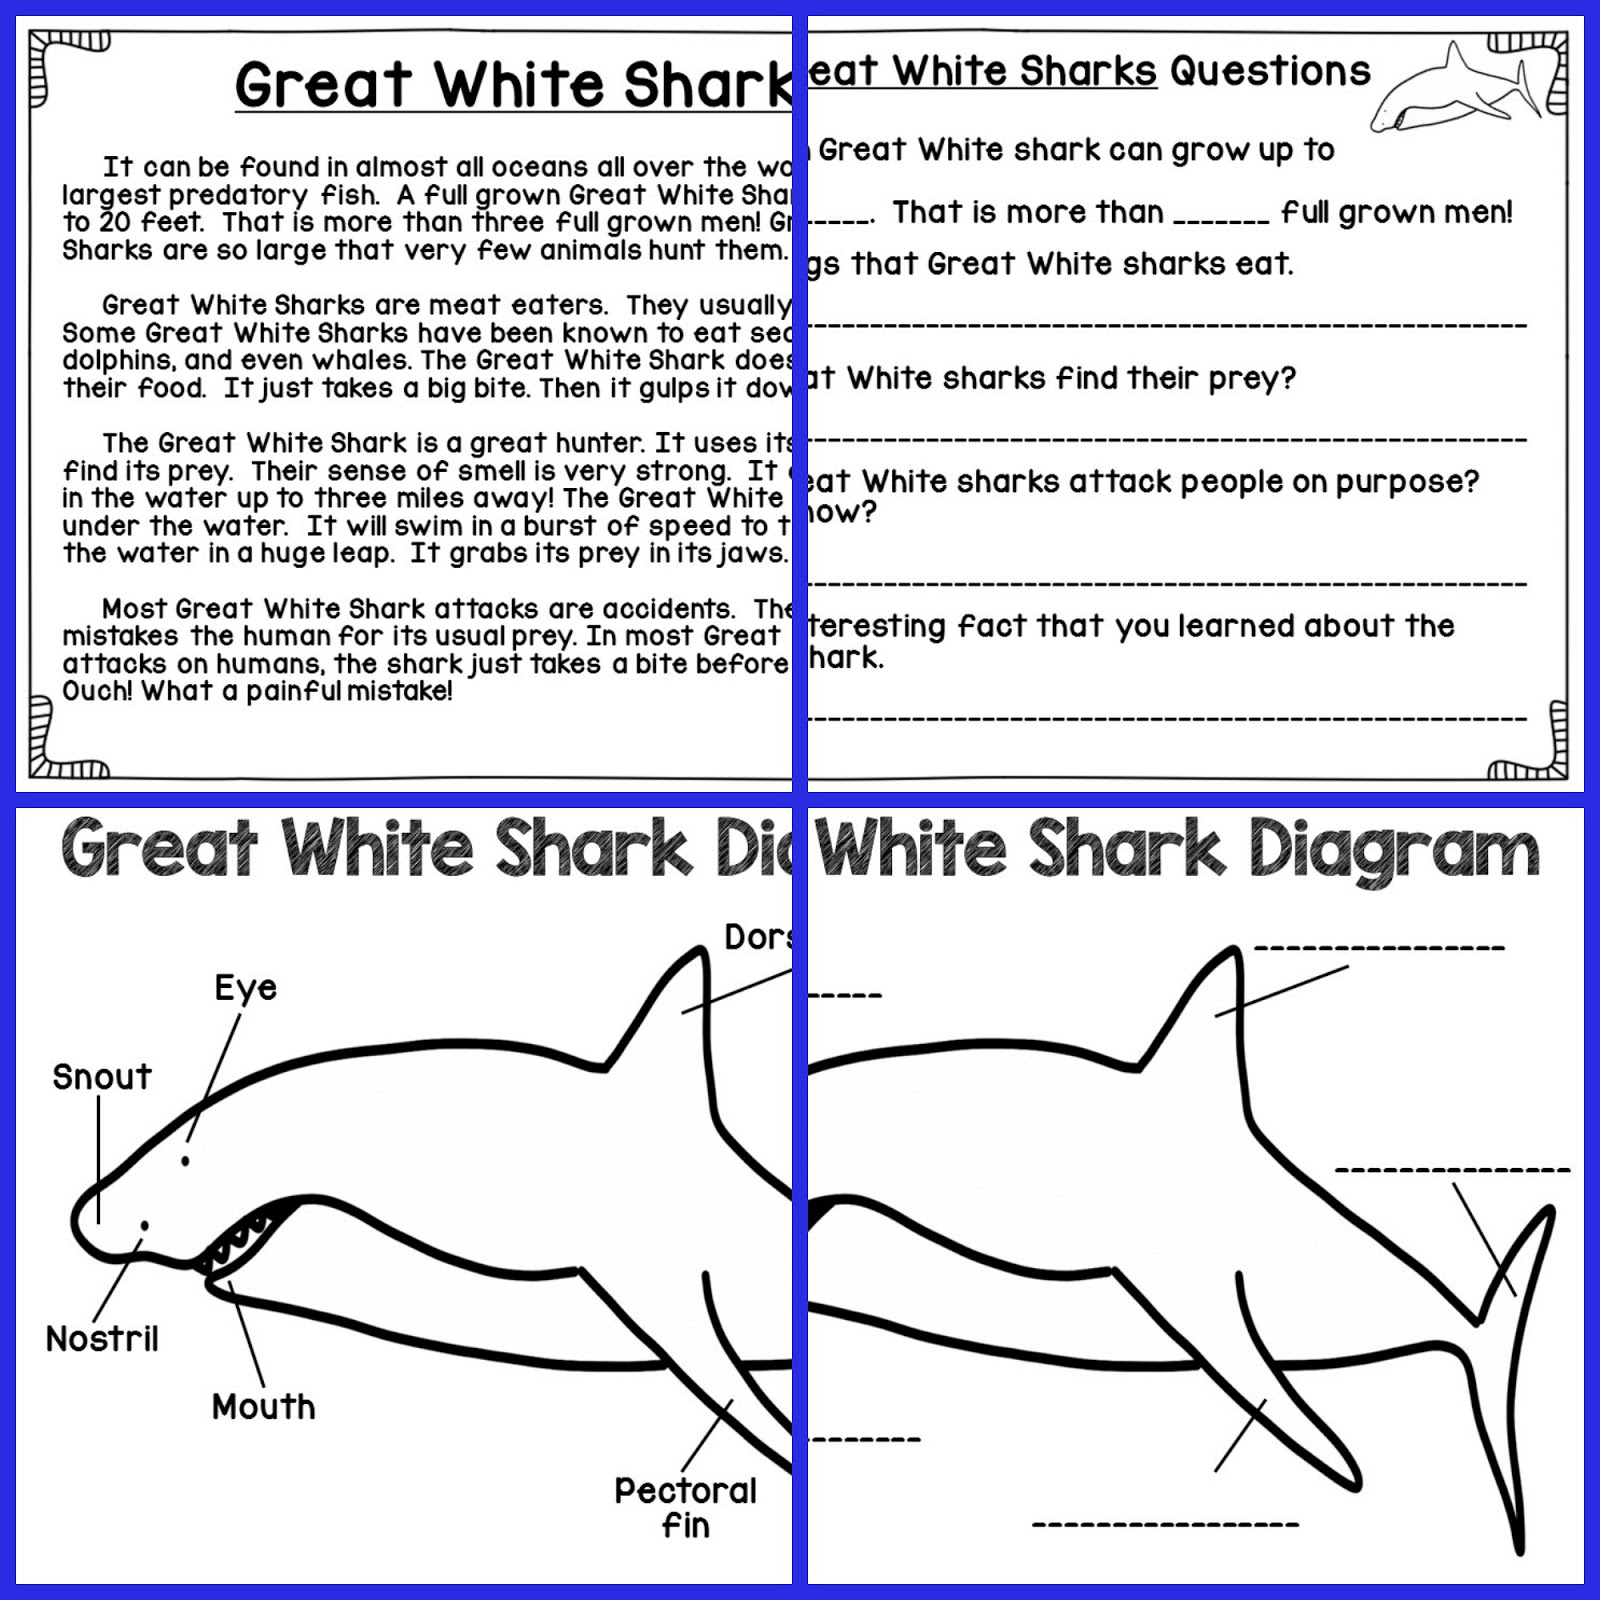 Great White Shark Life Cycle Diagram Car Door Lock Parts The Fabulous Of An Elementary Teacher Week